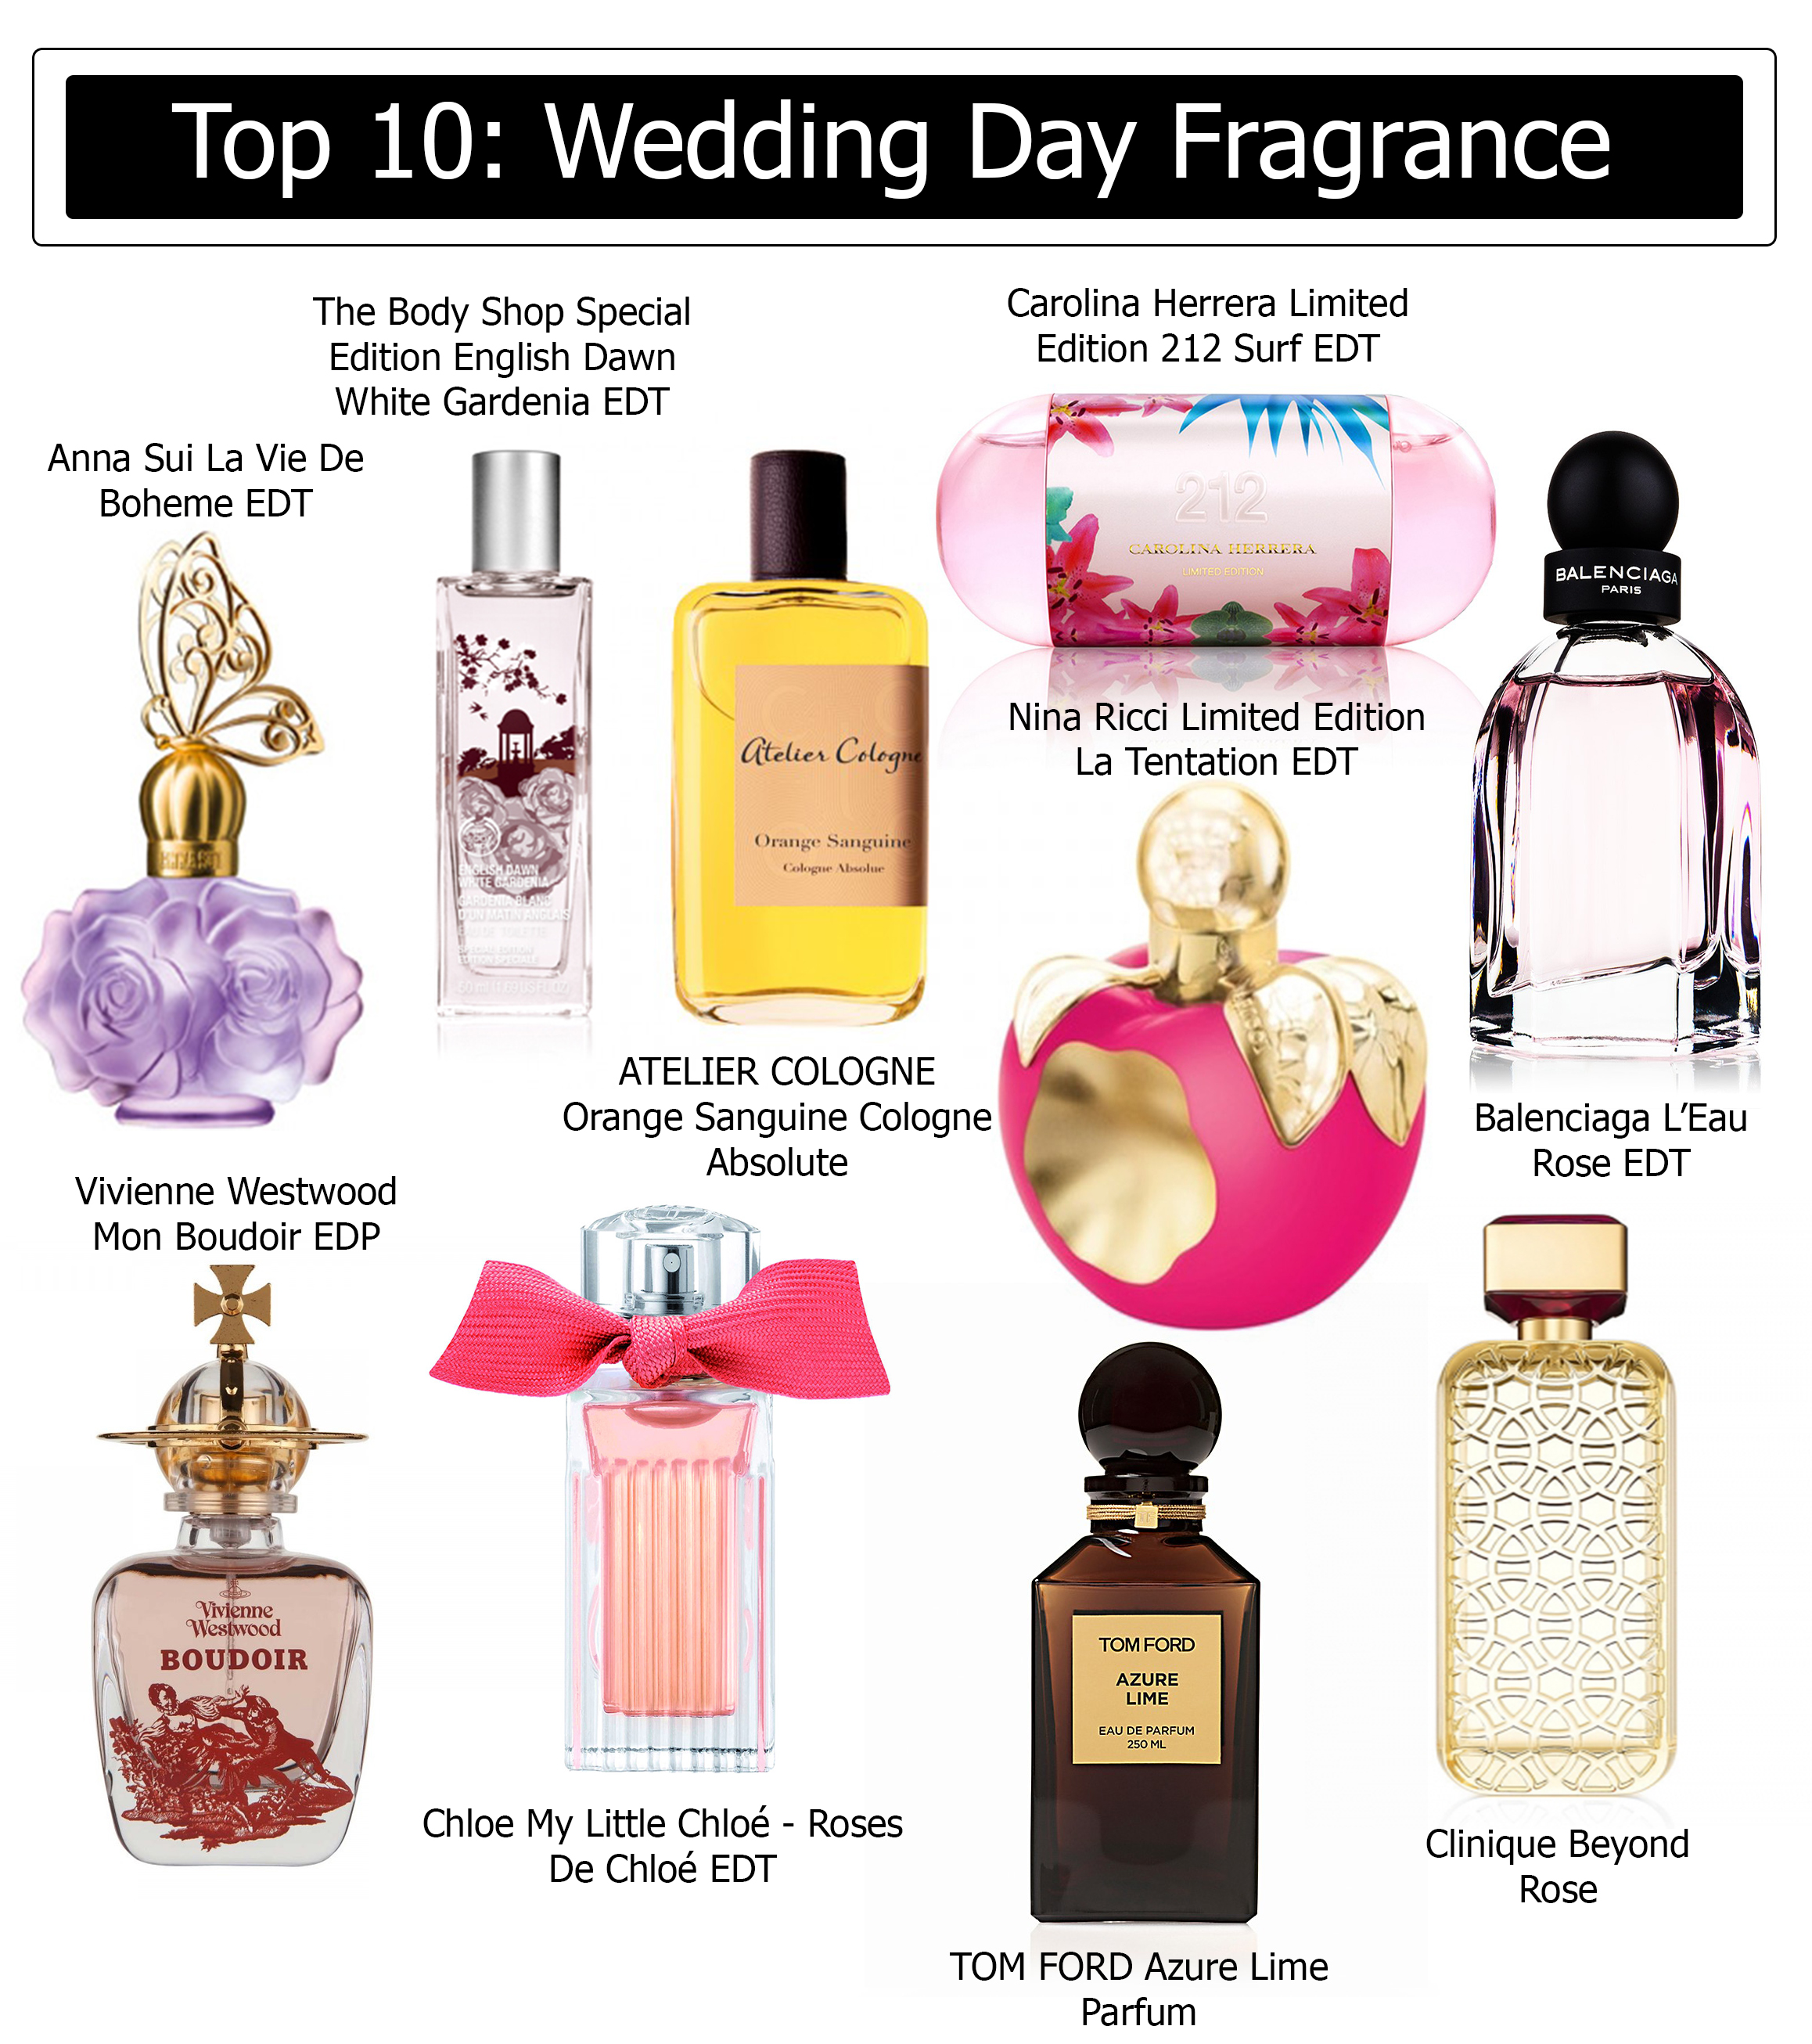 Luxe Blog Day FragranceThe Lifestyleamp; Beauty 10Wedding Top bfy7g6